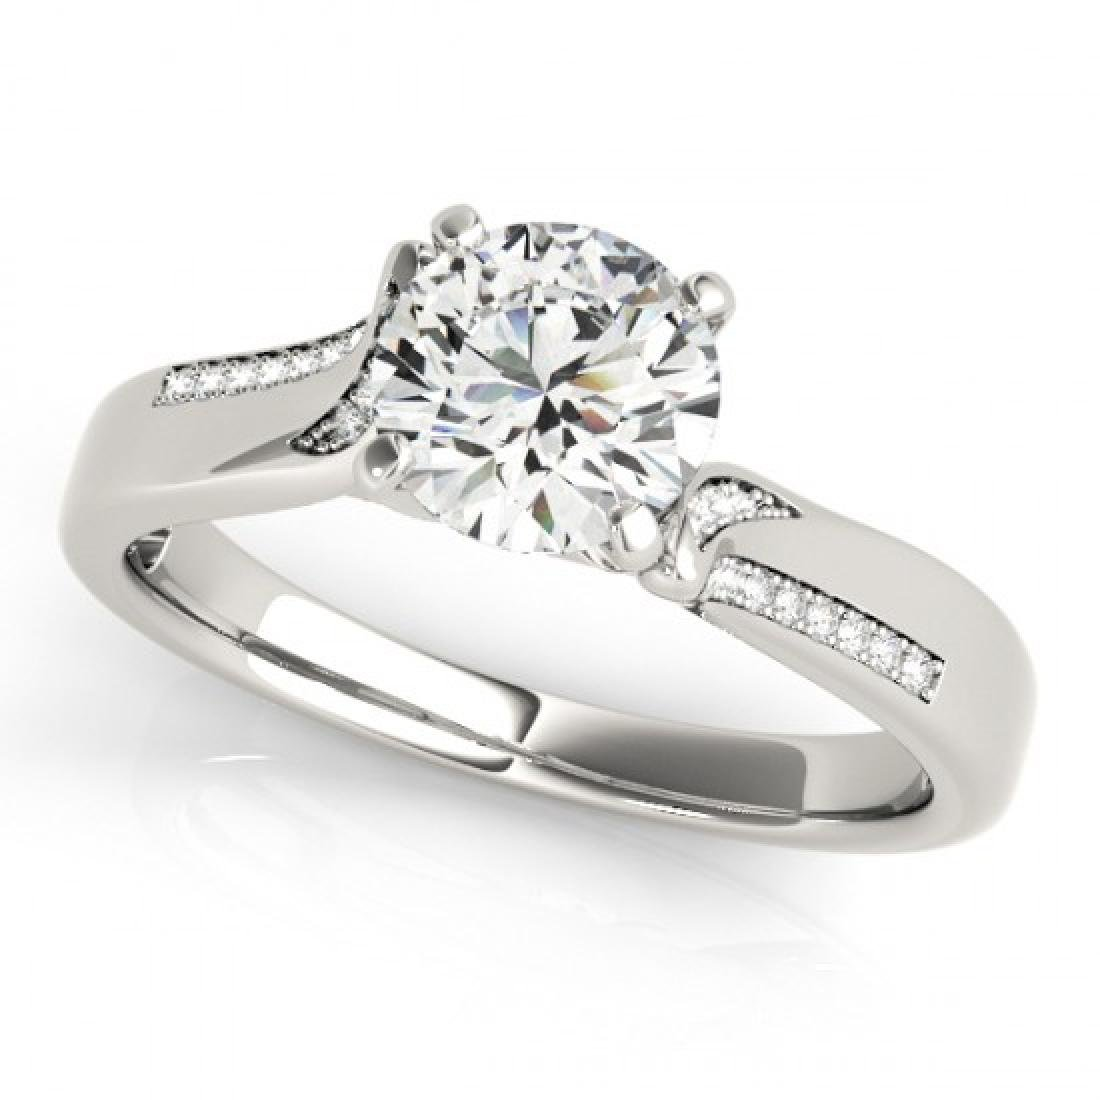 1.18 CTW Certified VS/SI Diamond Solitaire Ring 14K